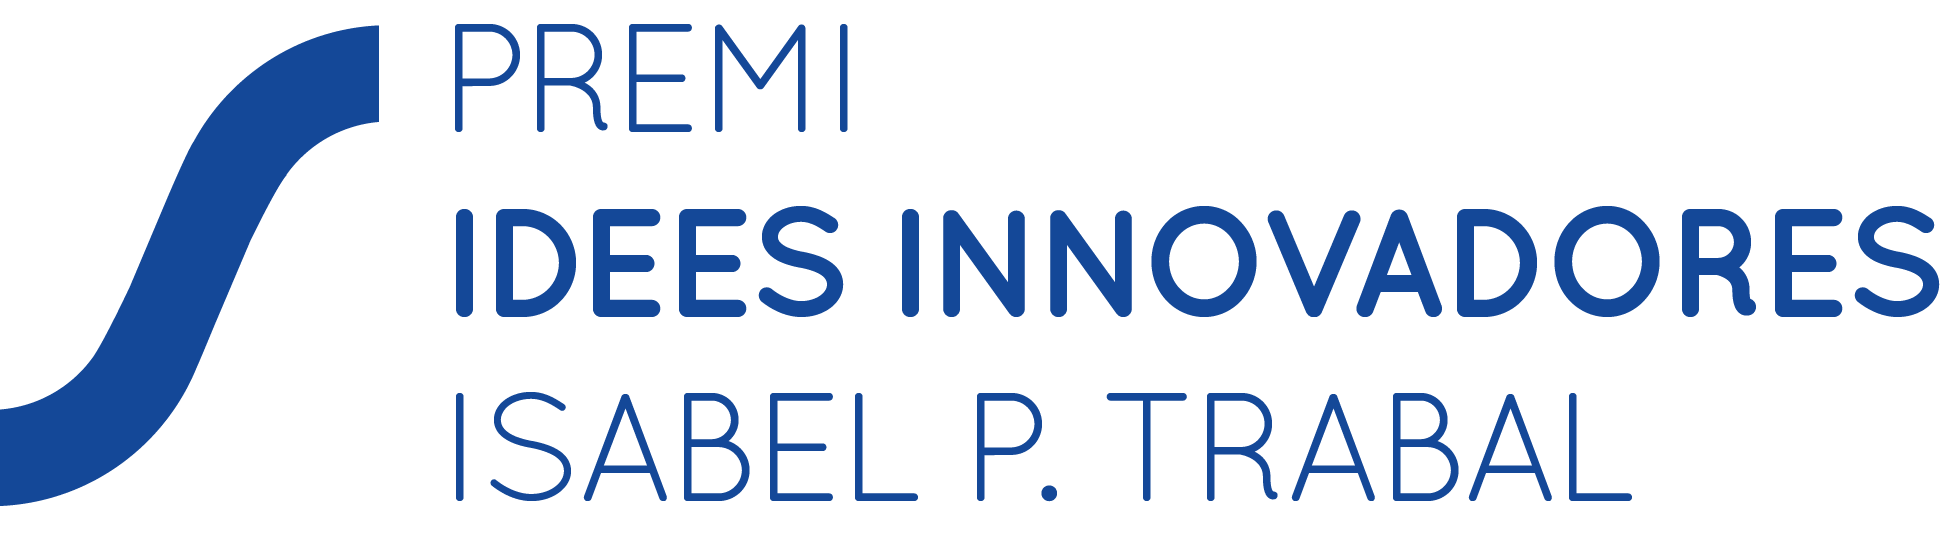 logo premi iders innovadores Isabel P. Trabal